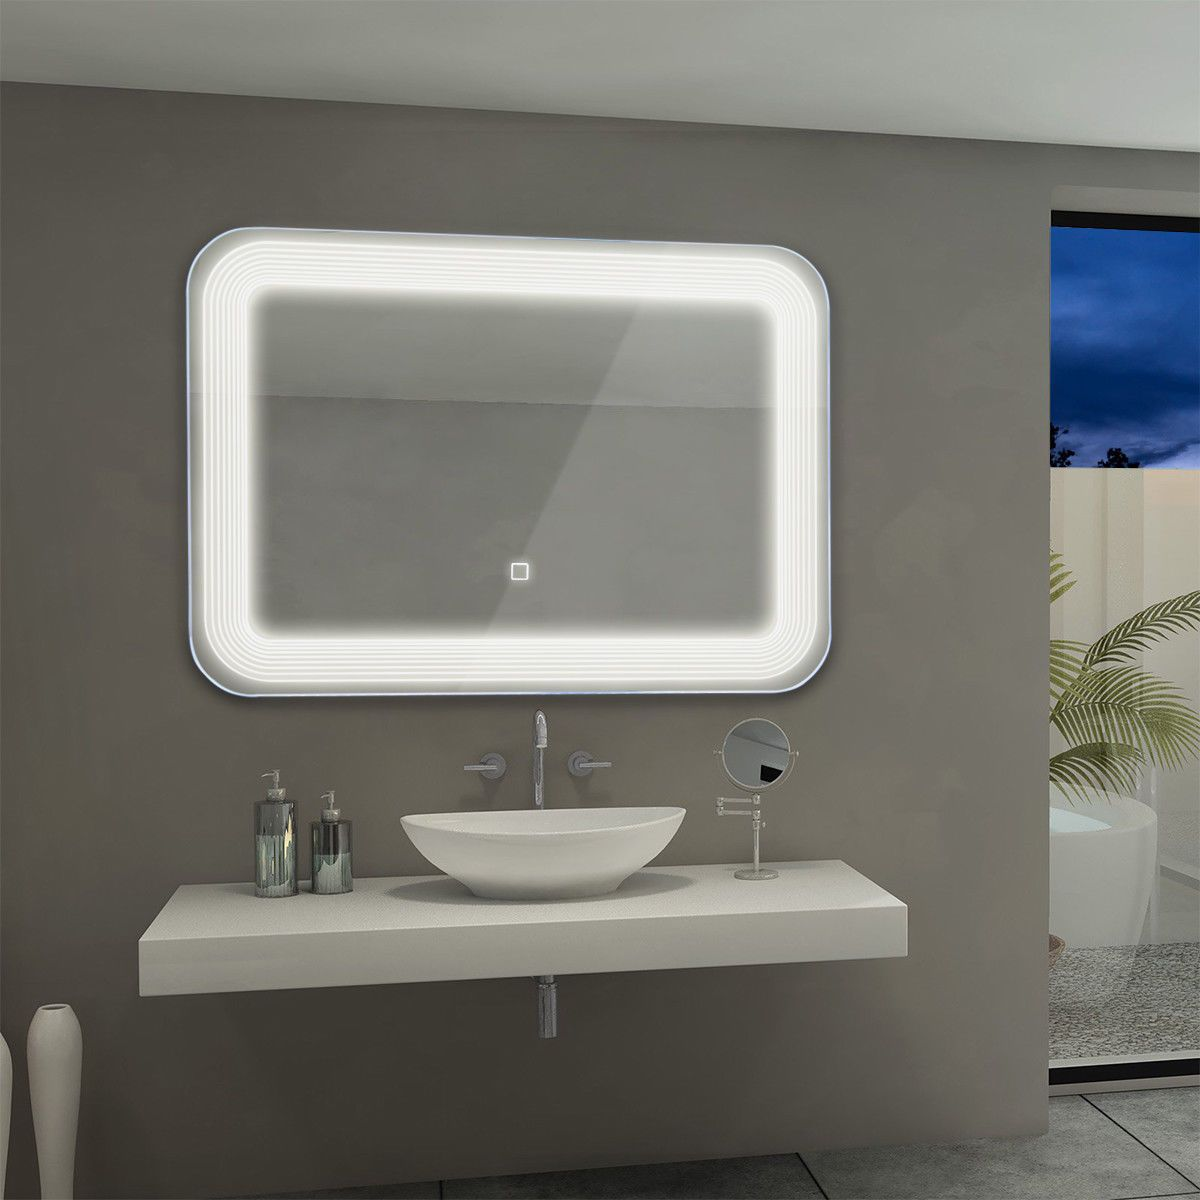 Home In 2020 With Images Led Mirror Bathroom Wall Mounted Mirror Wall Mounted Makeup Mirror